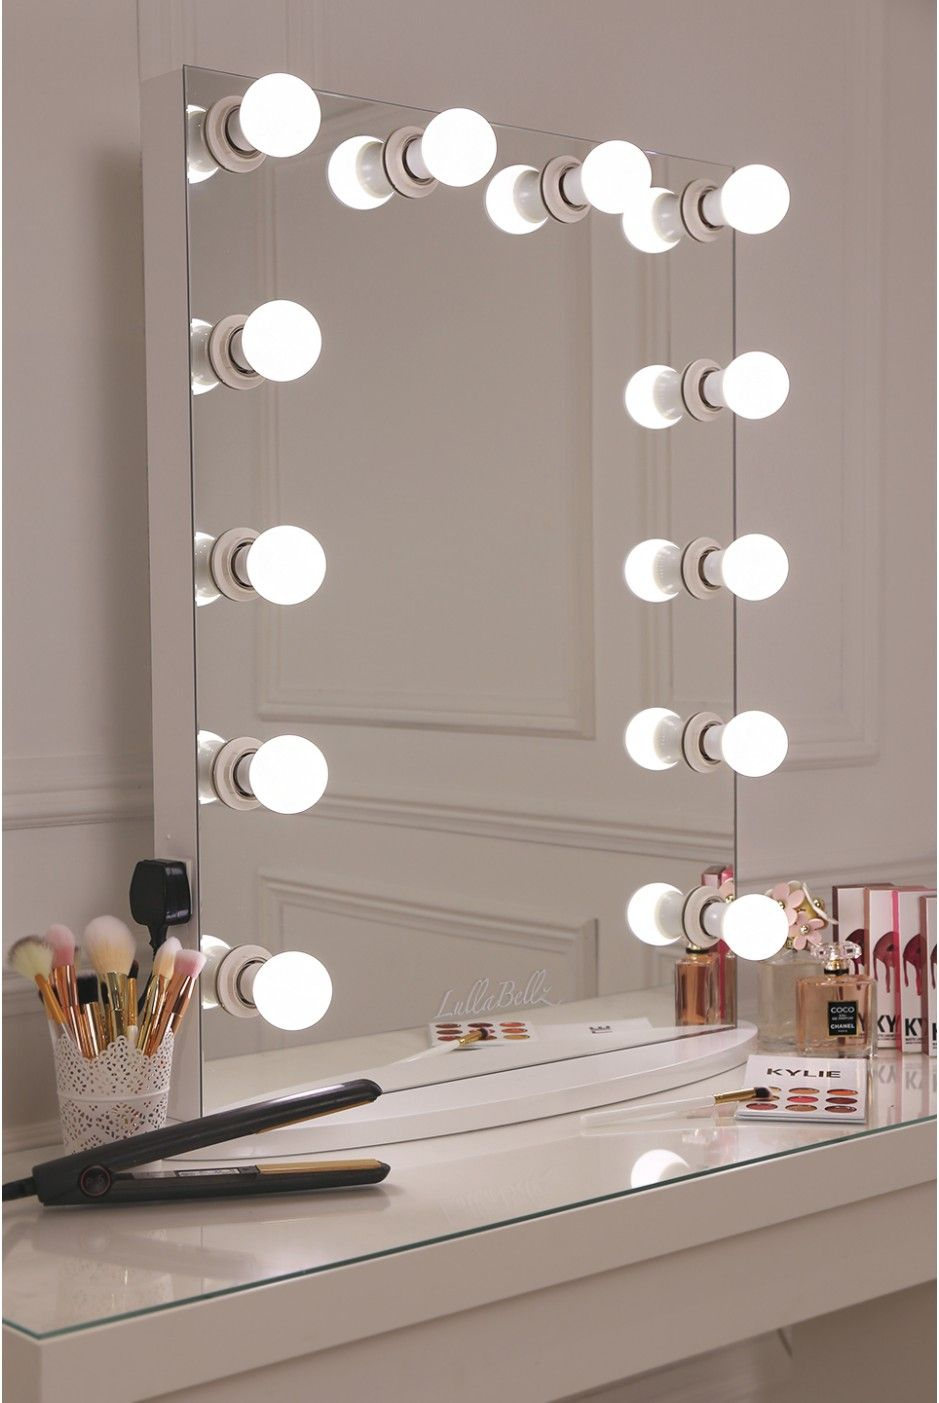 Vanity Mirror With Lights White : LULLABELLZ Hollywood Glow Vanity Mirror LED Bulbs. This is what make up dreams are made of girls ...